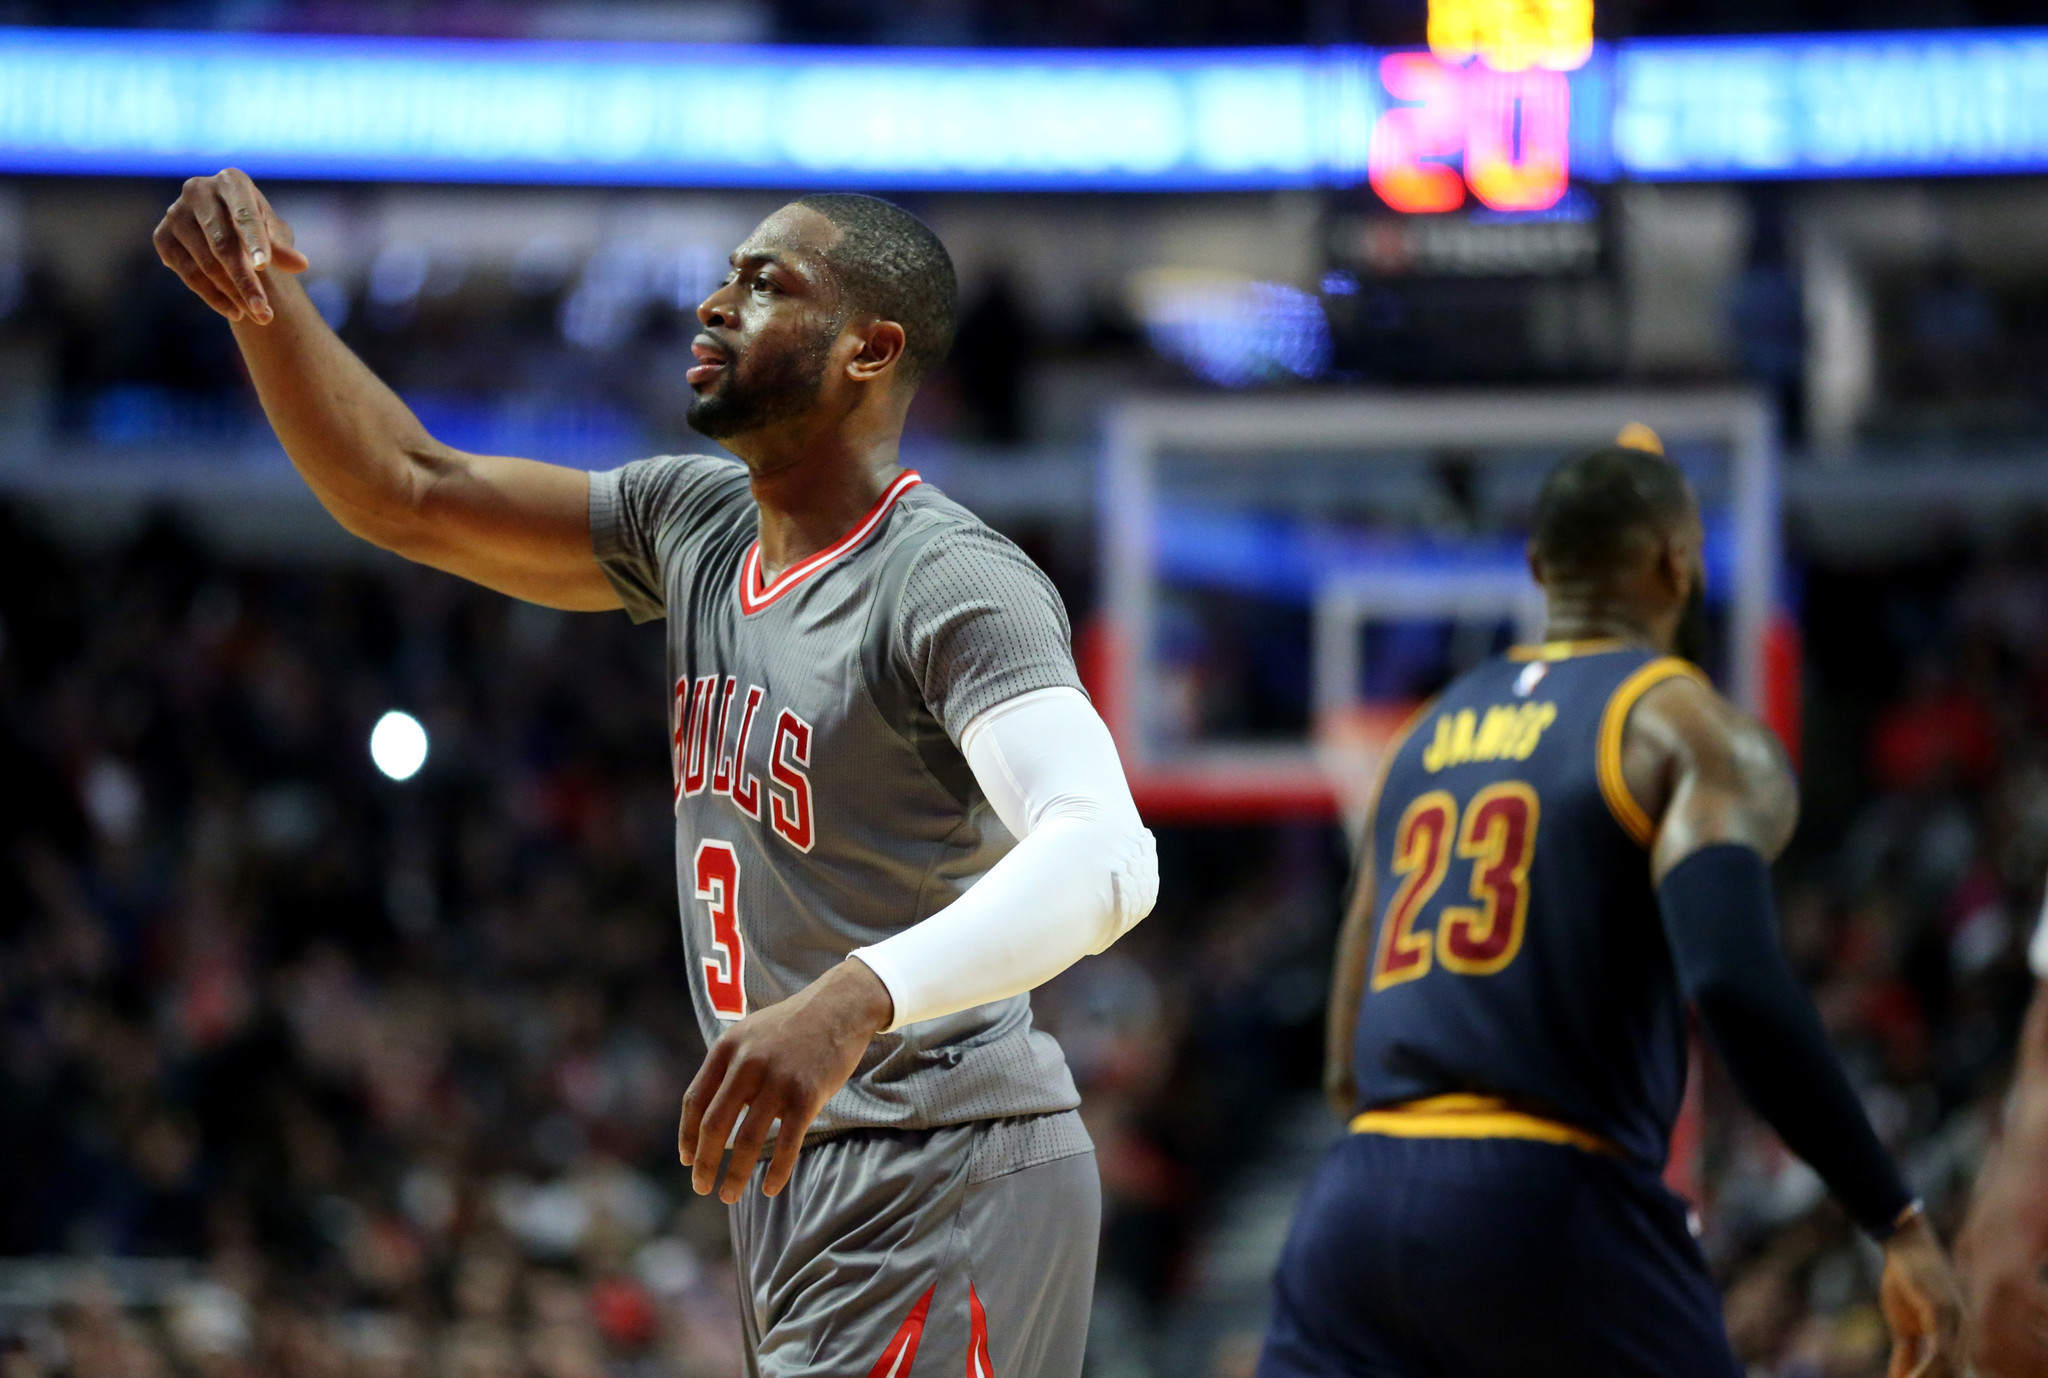 Ct-wade-outduels-james-bulls-cavaliers-spt-1203-20161202